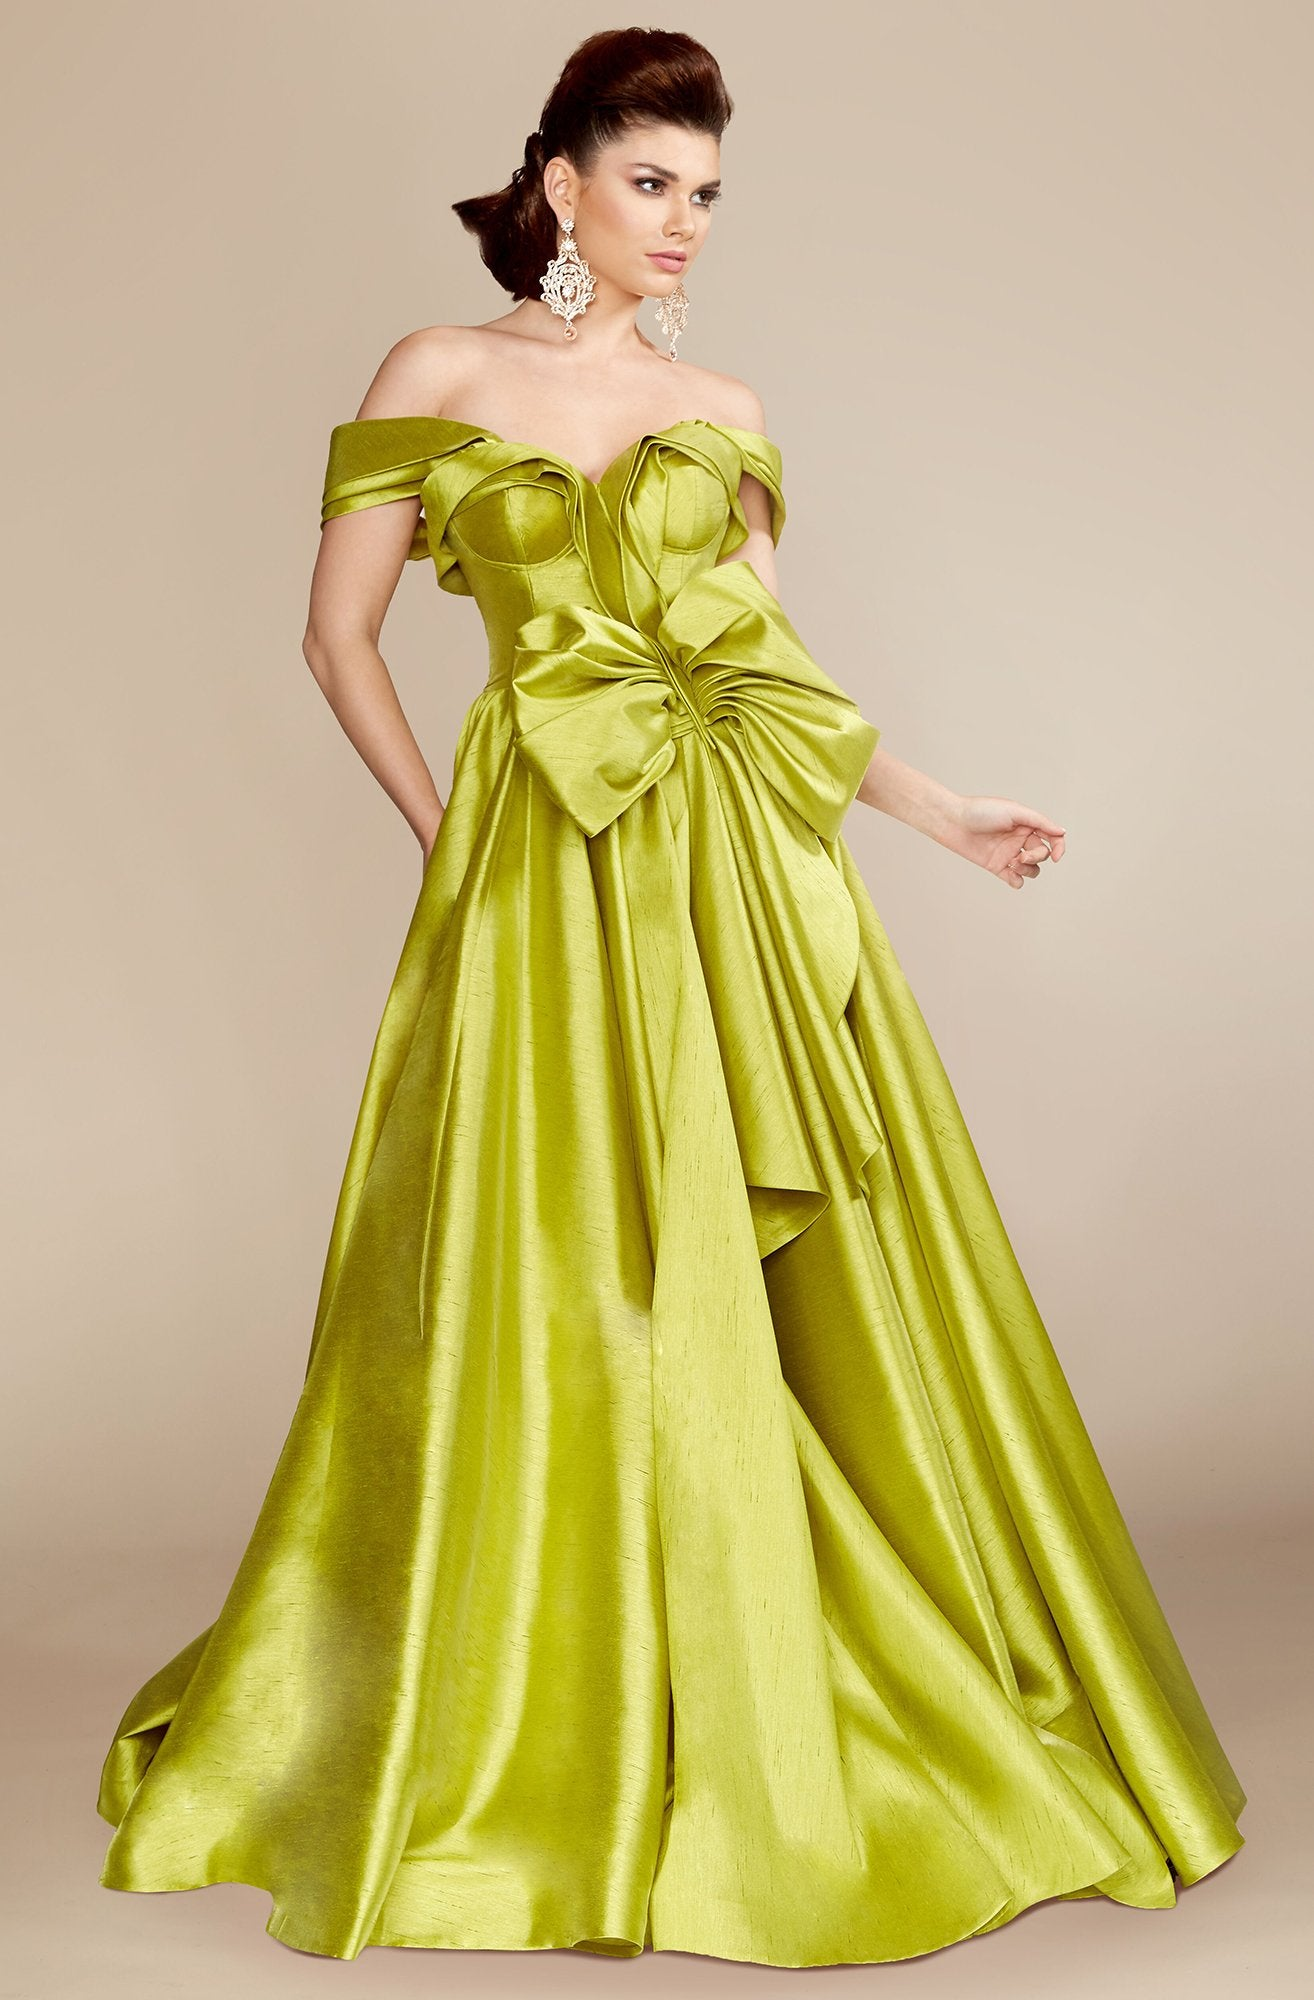 MNM Couture - 2343 Fabulous Off Shoulder Bow Accent Ballgown in Green